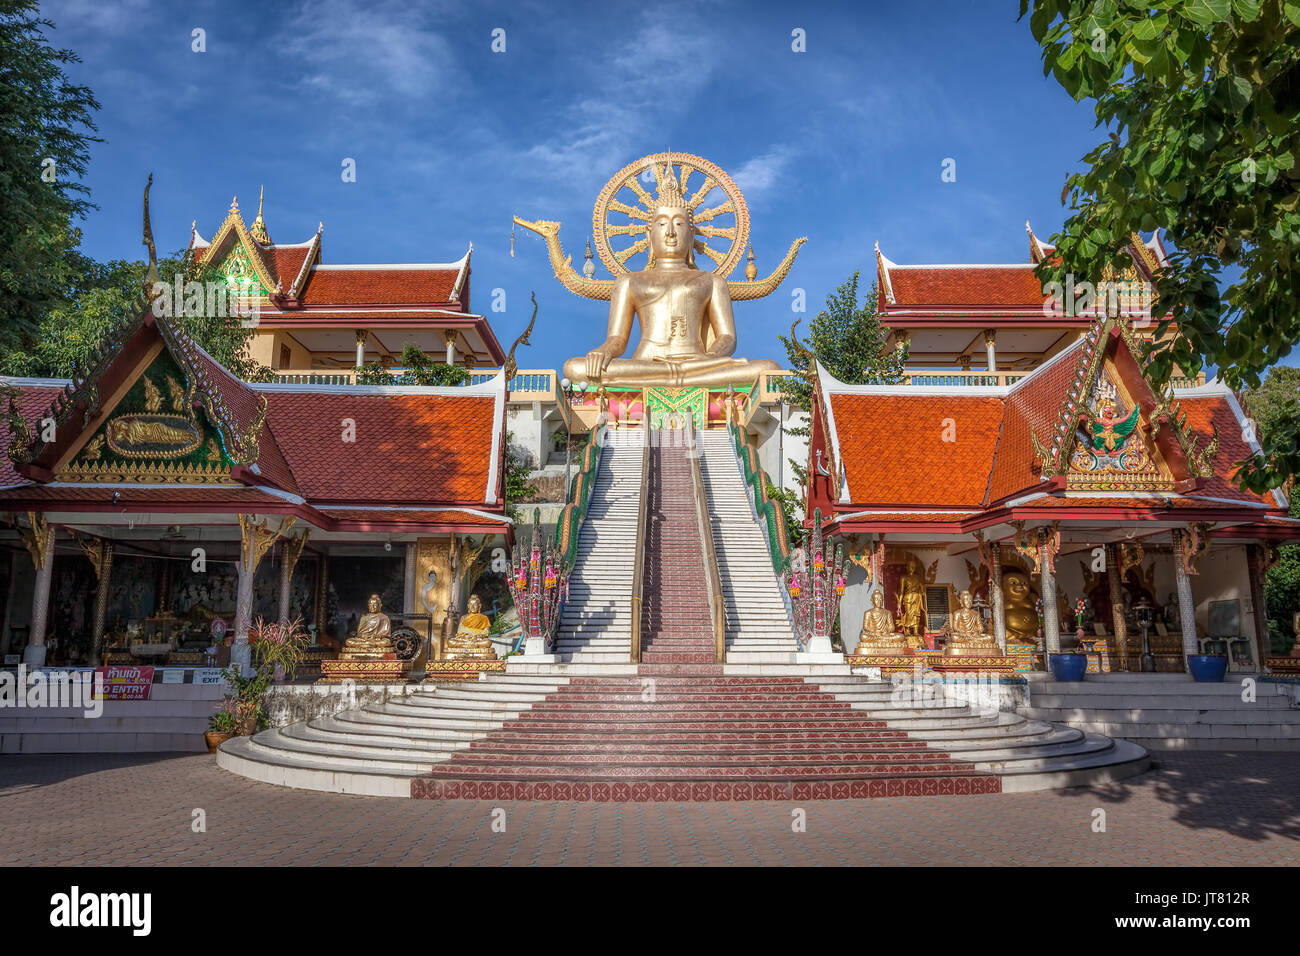 Big Buddha temple ou Wat Phra Yai à Kho Samui Island, Thaïlande Photo Stock